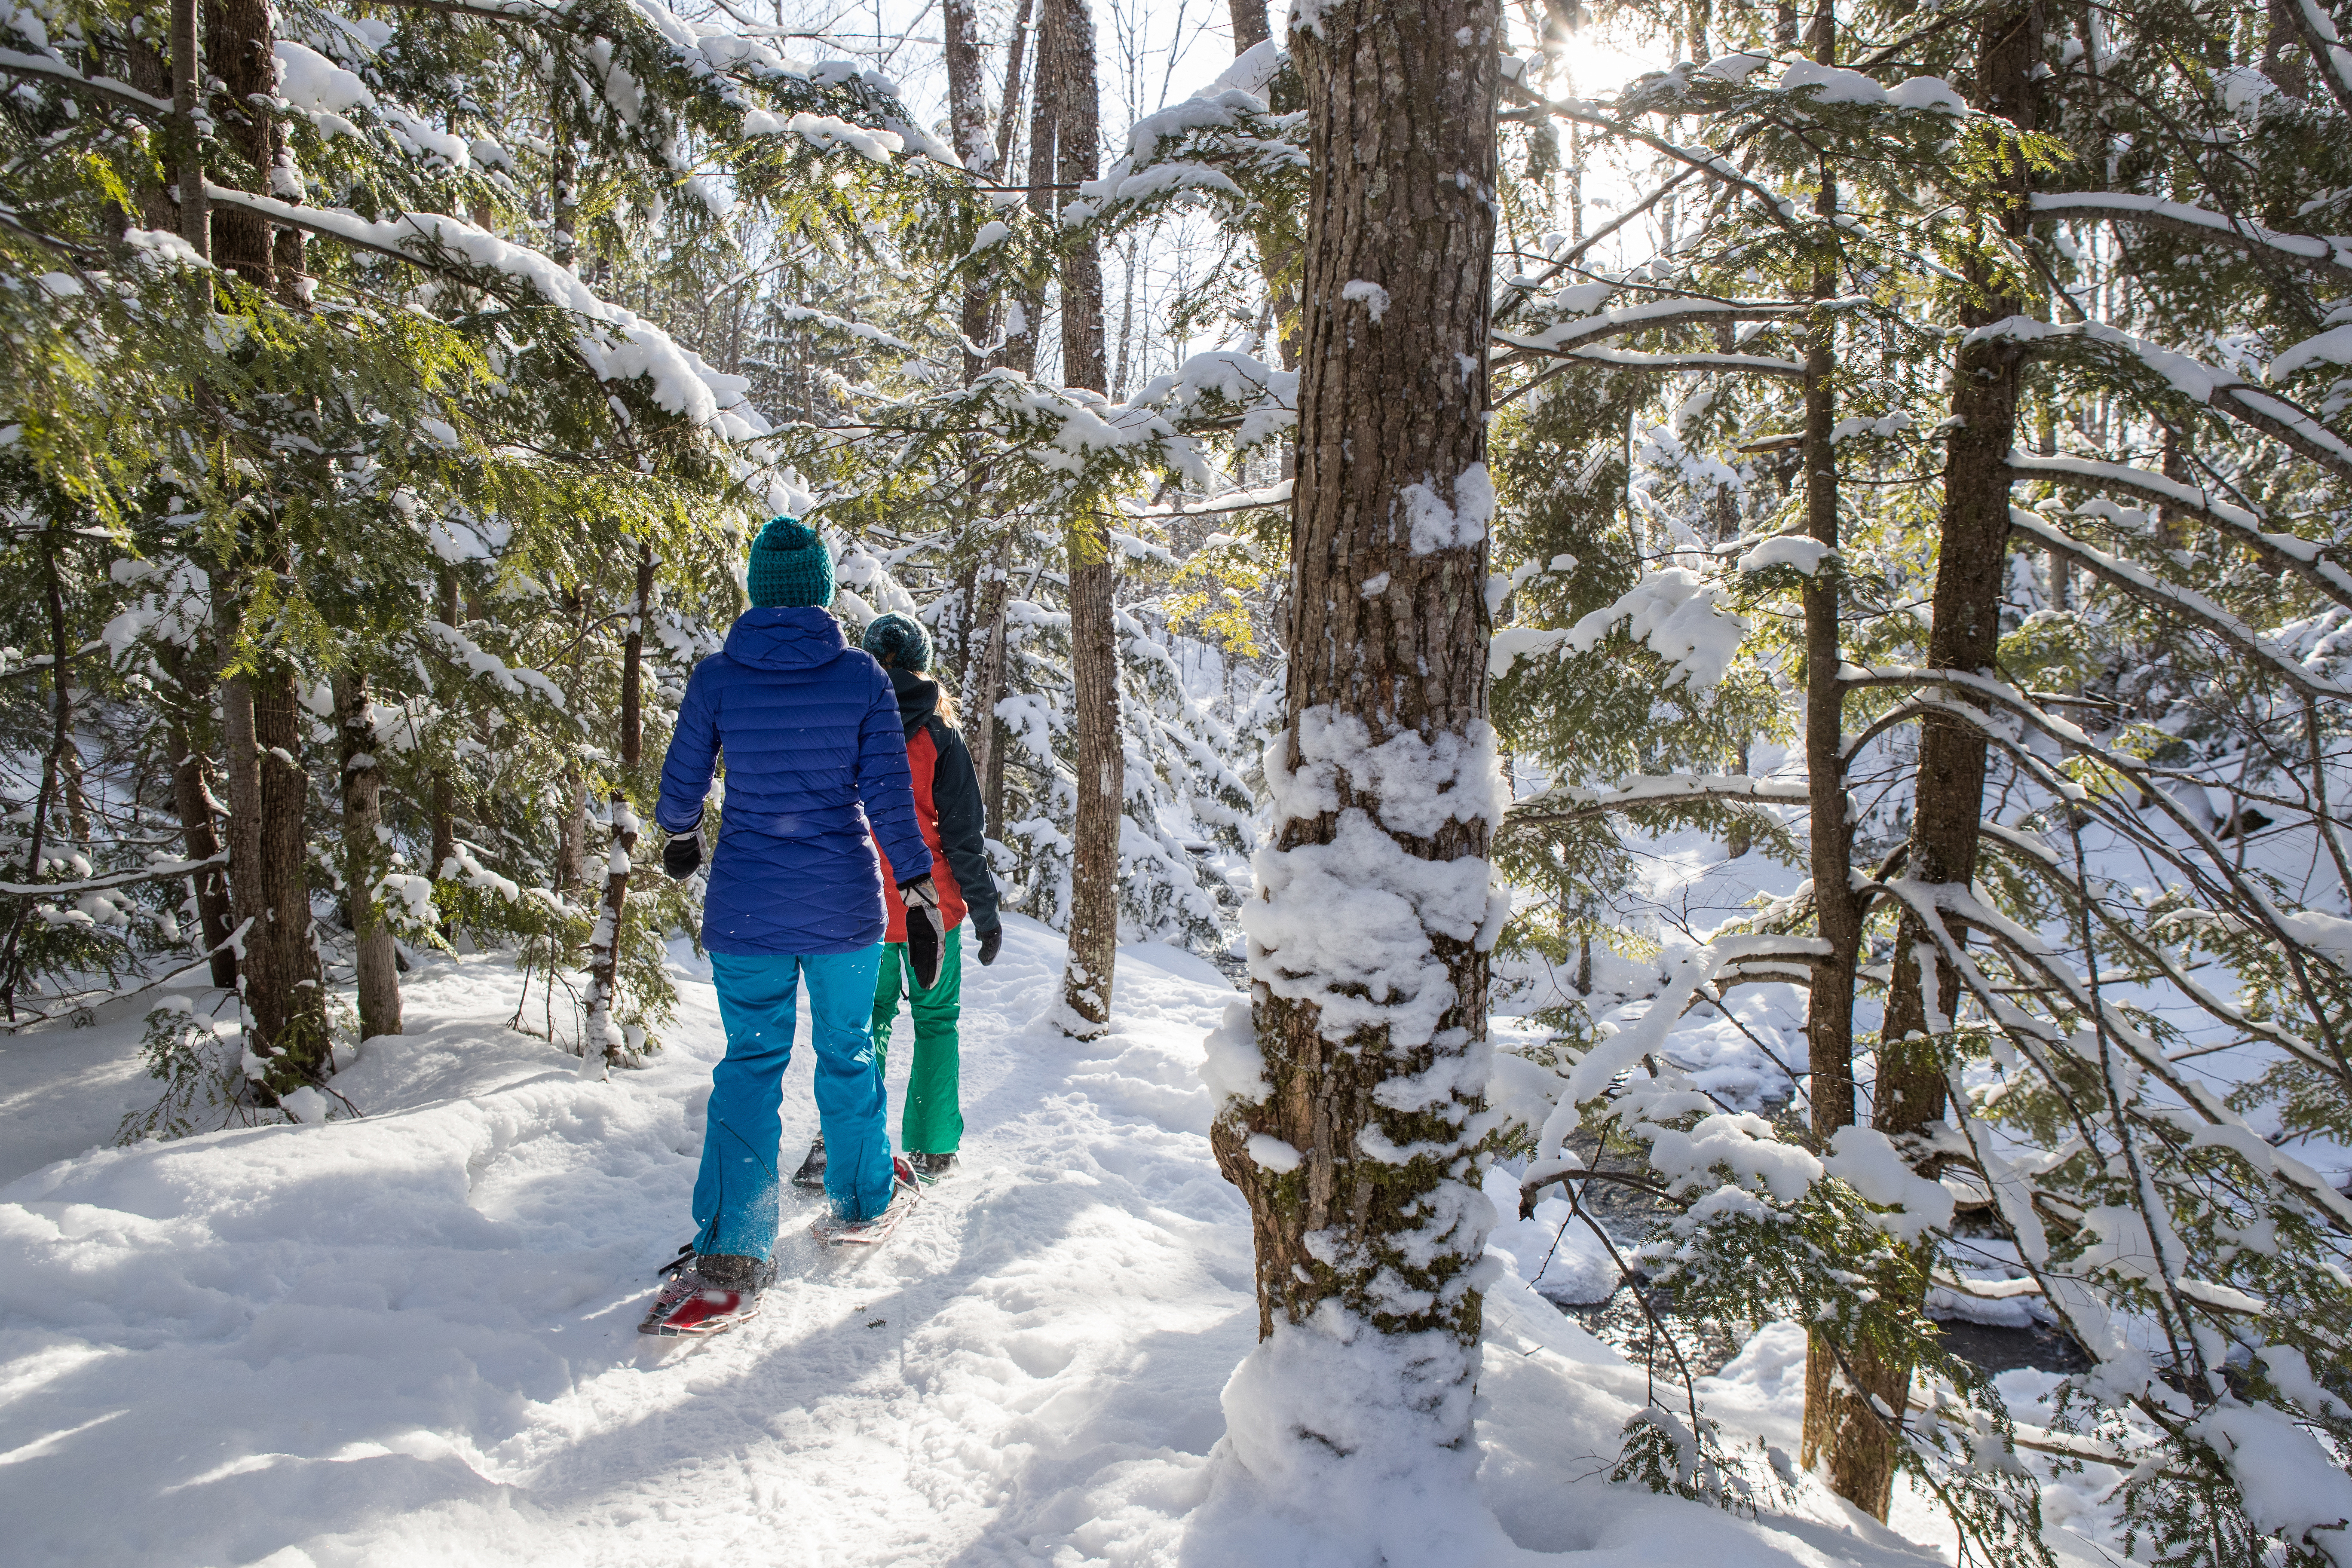 Snowshoeing in winter